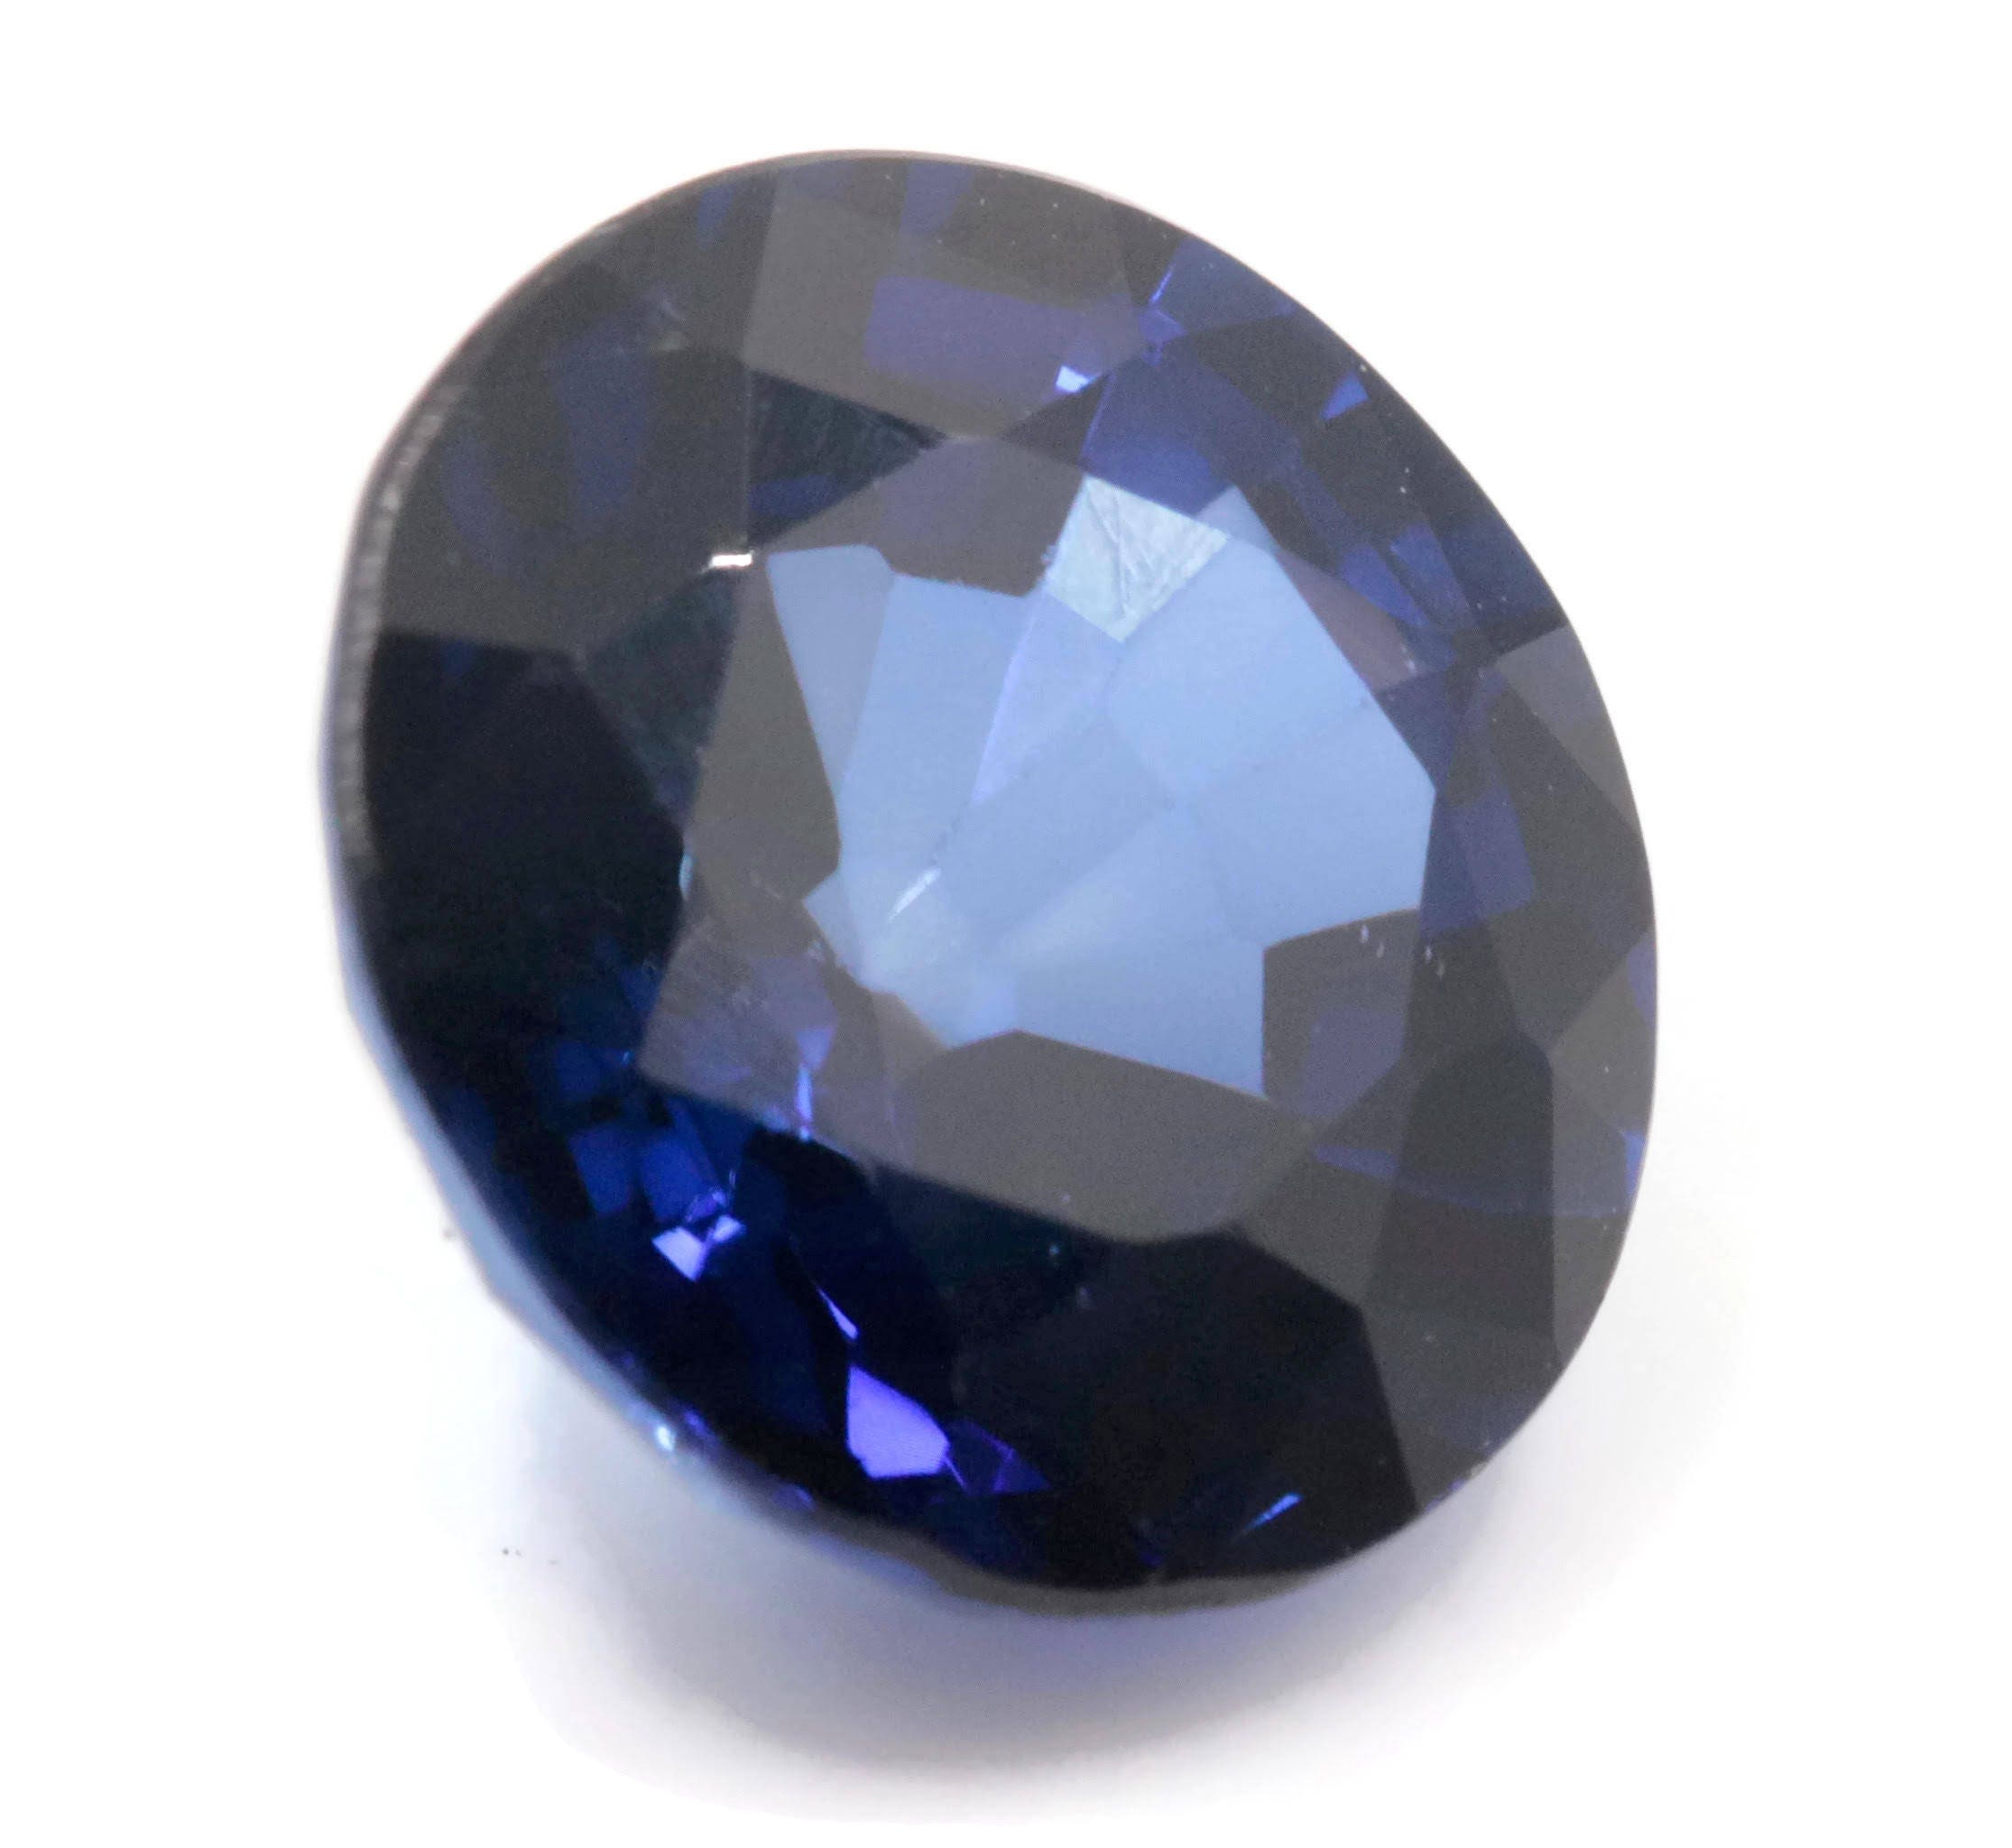 talismans buy planetary in untreated india sapphire best ceylon sapphires to fine unheated blue place natural blog online